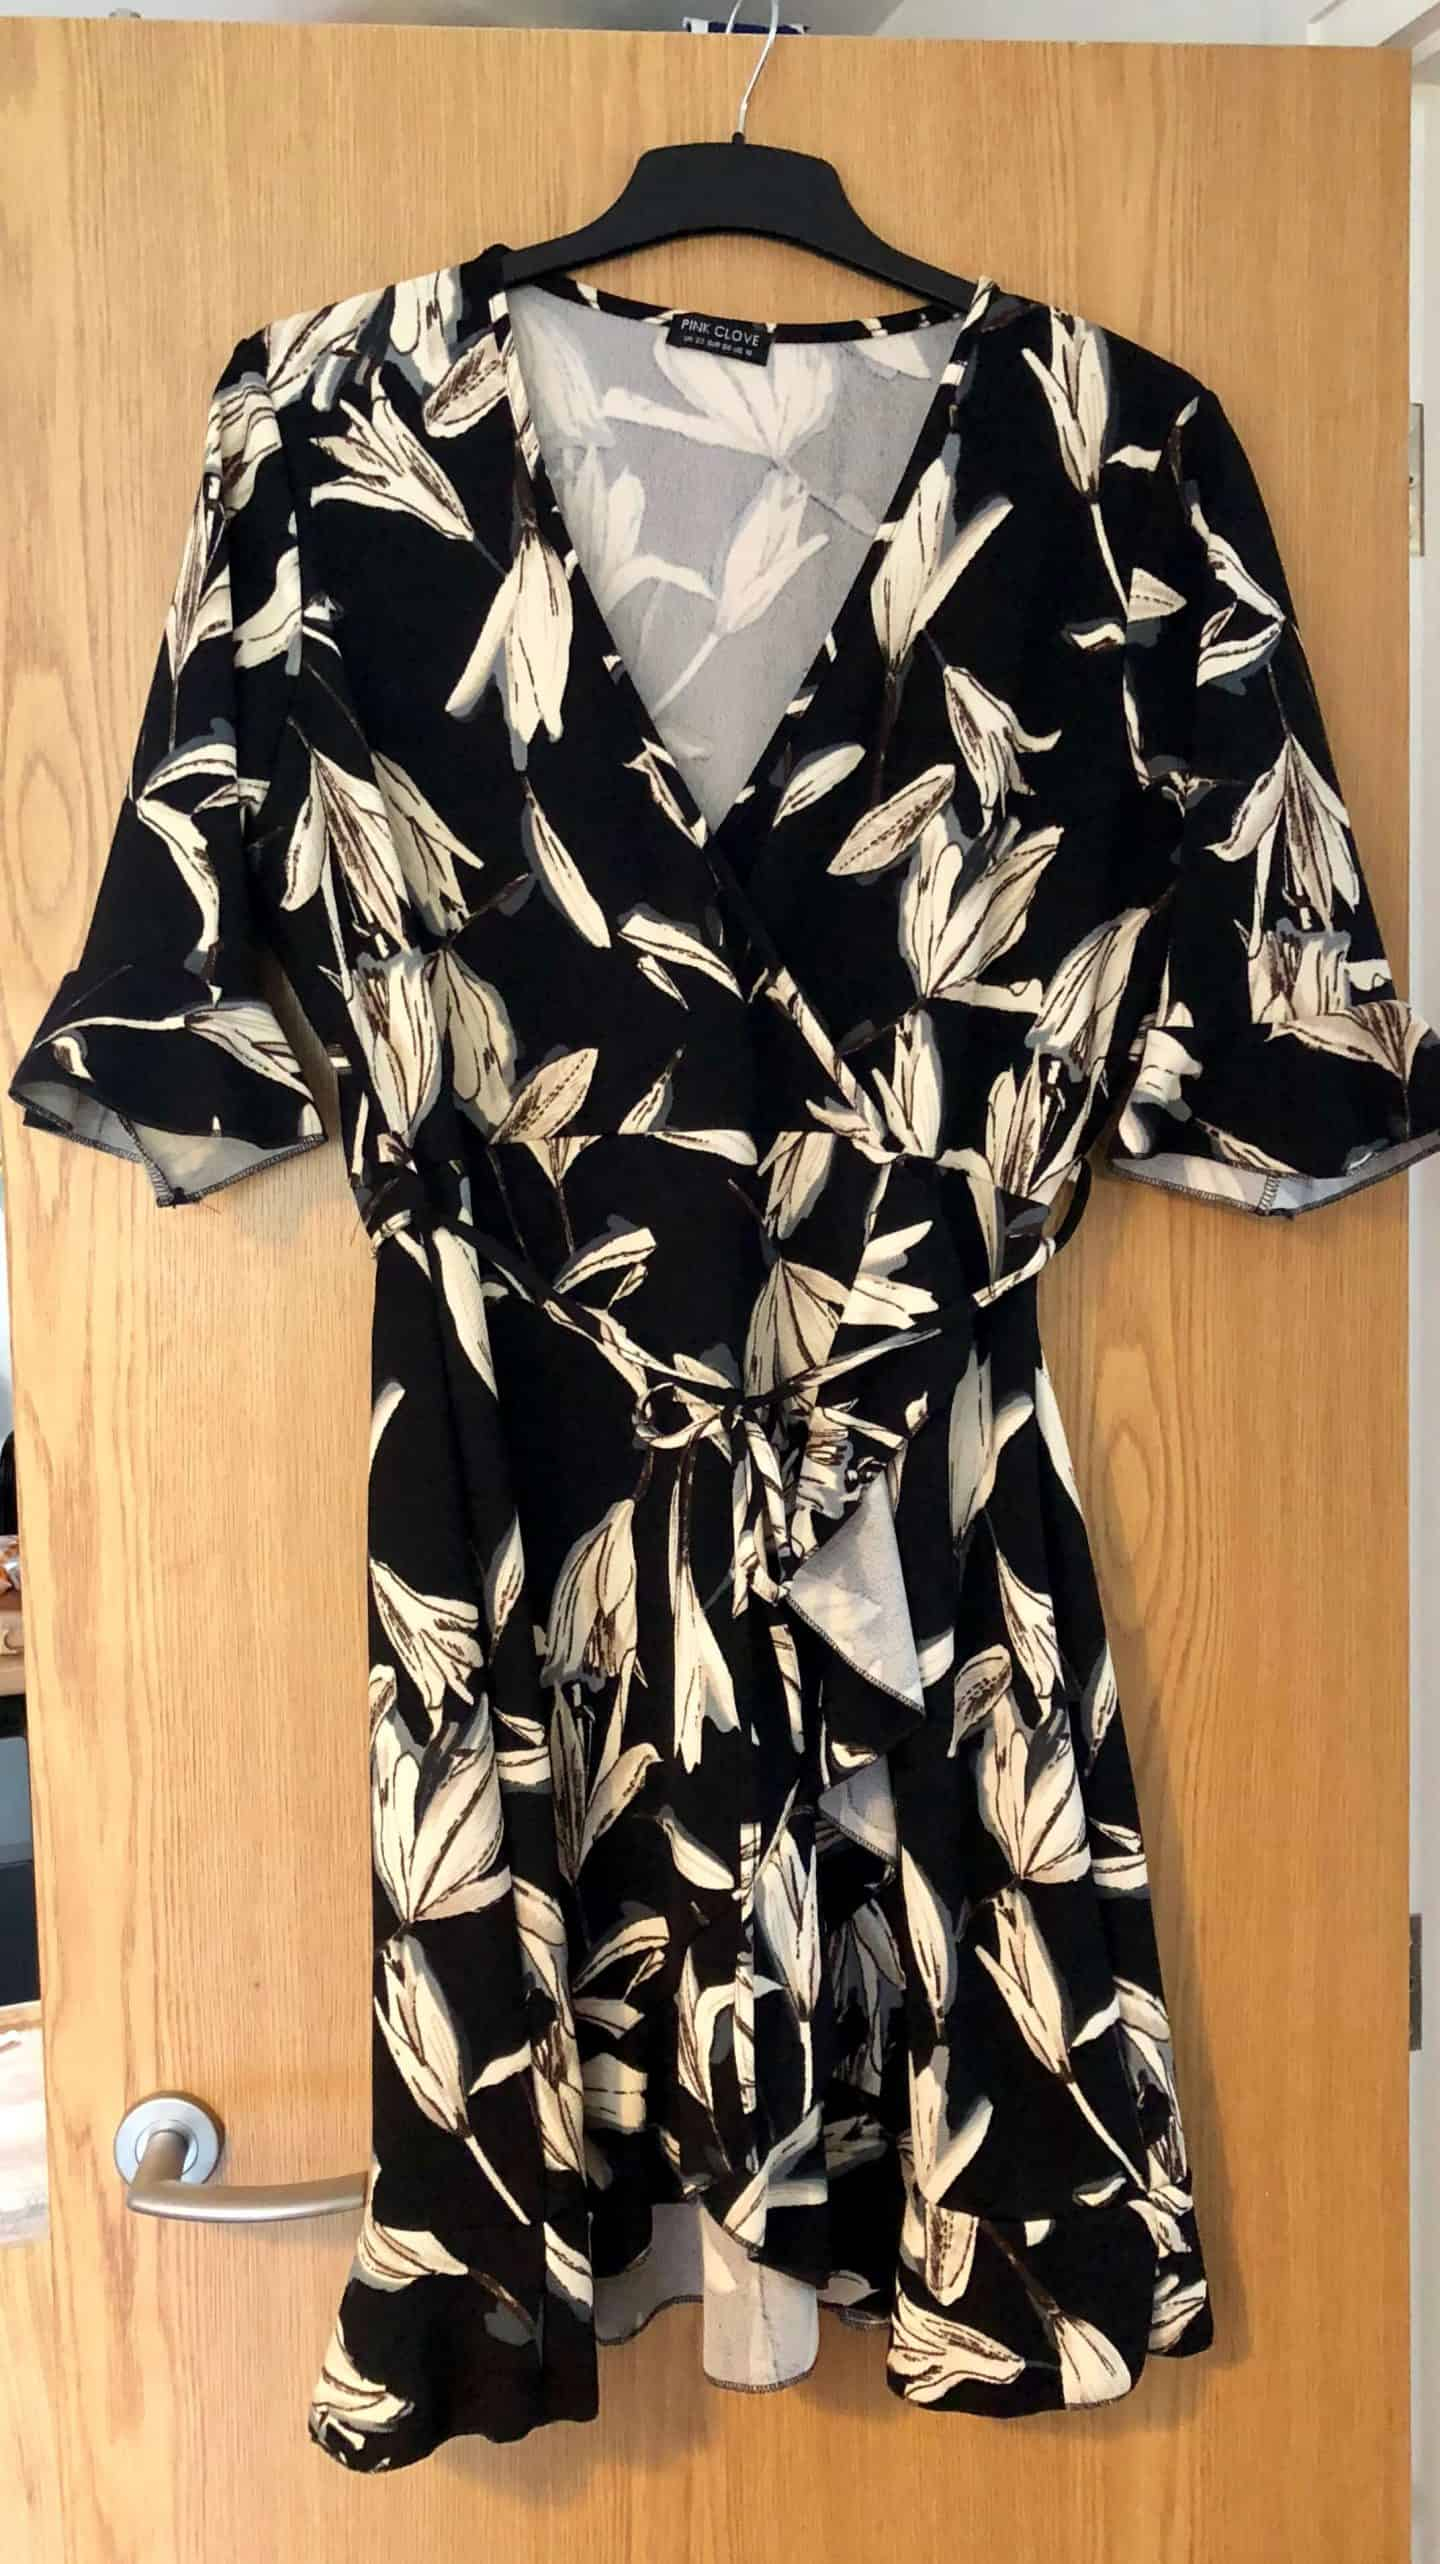 black and white wrap around dress from Pink Clove, plus size